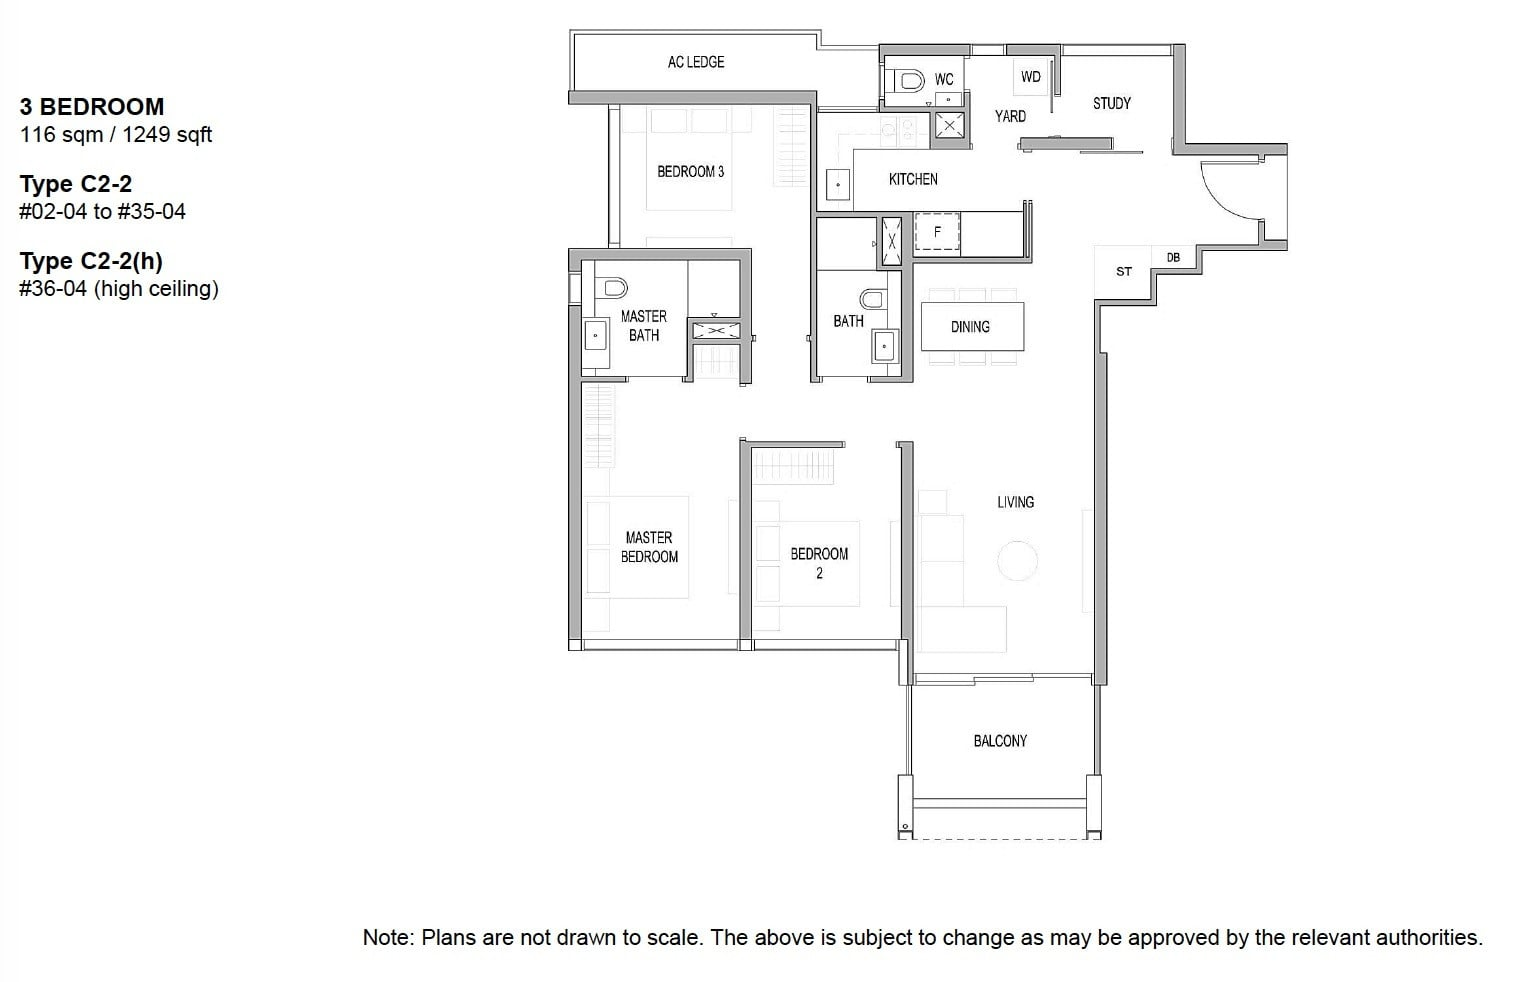 Riviere river valley floor plan 3BR 1249 sqft